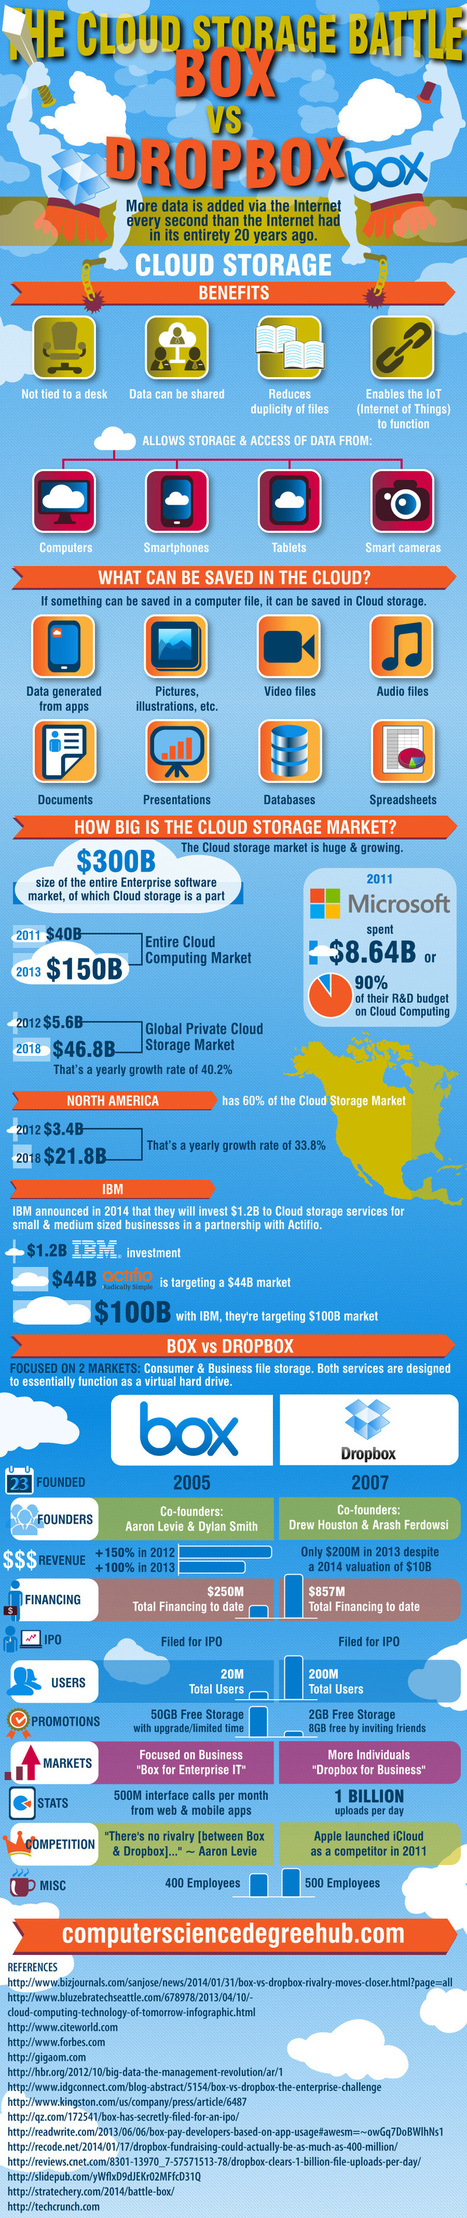 INFOGRAPHIC: Storage Battle - Box vs Dropbox | All about Cloud Computing | Scoop.it